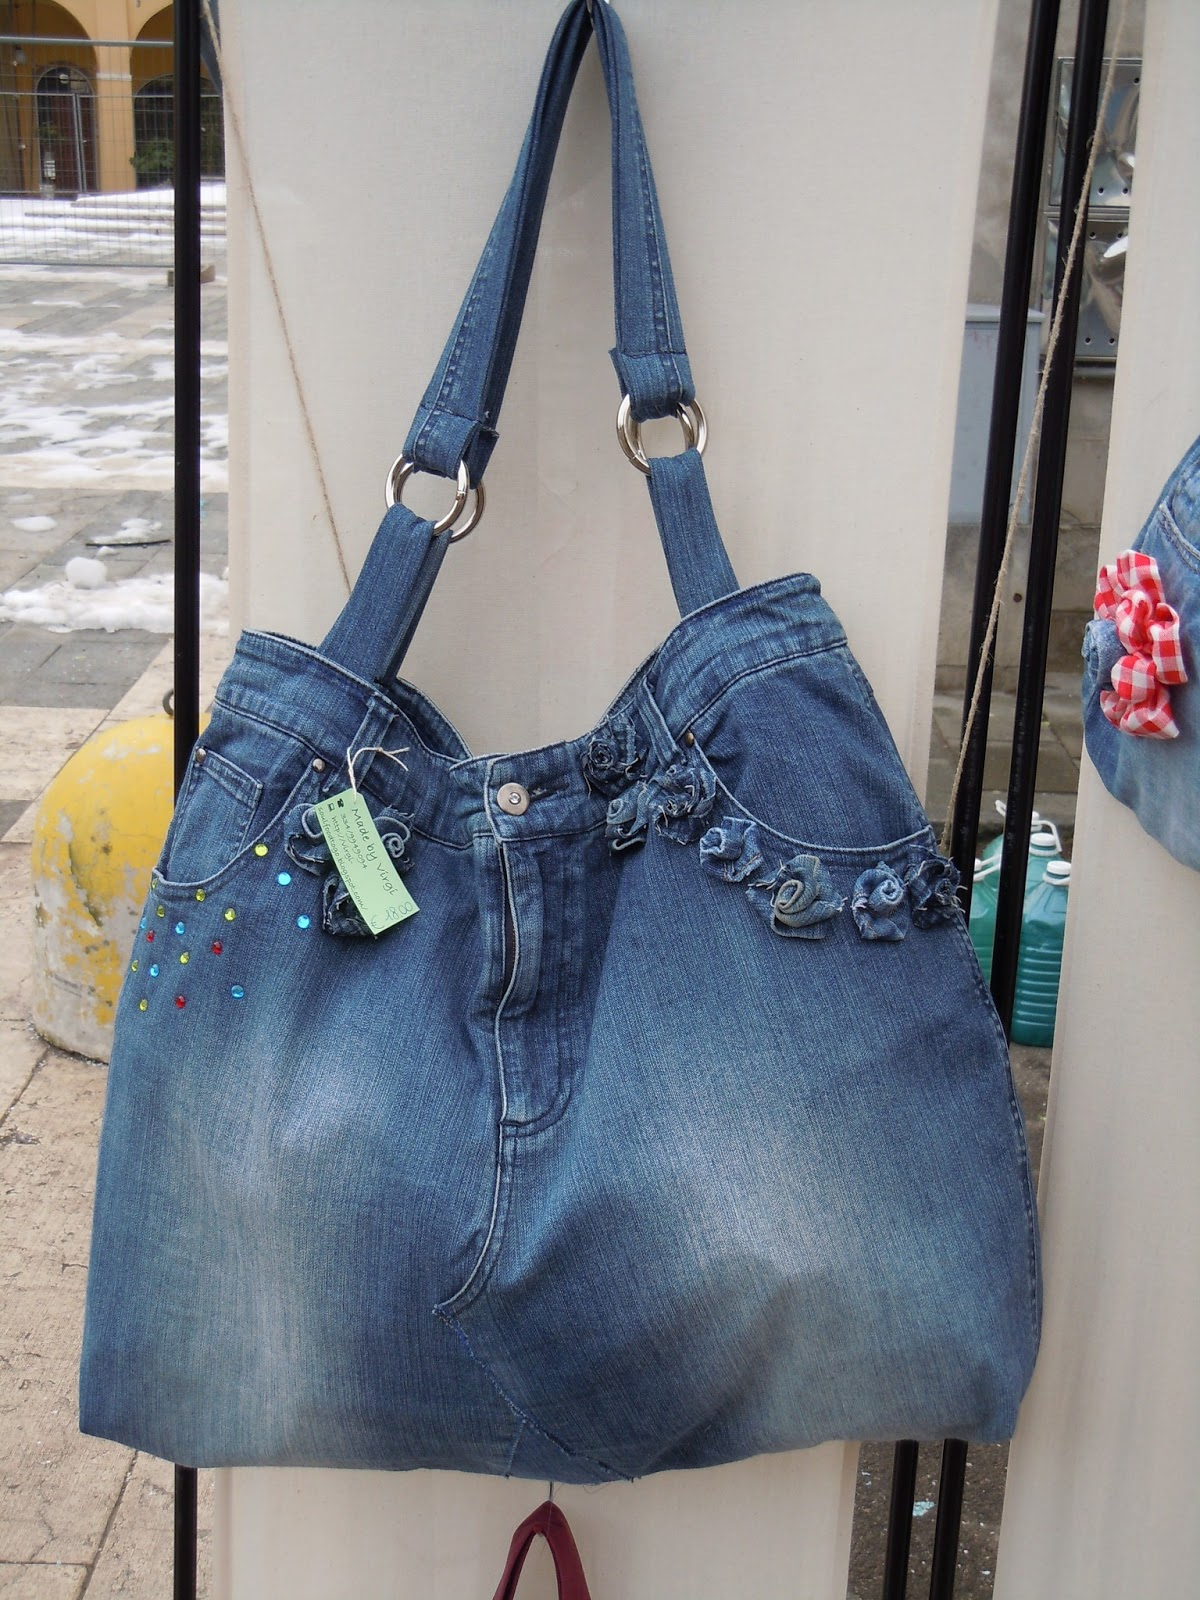 Soul food to go borse di jeans fatte con i jeans for Borsa jeans tutorial